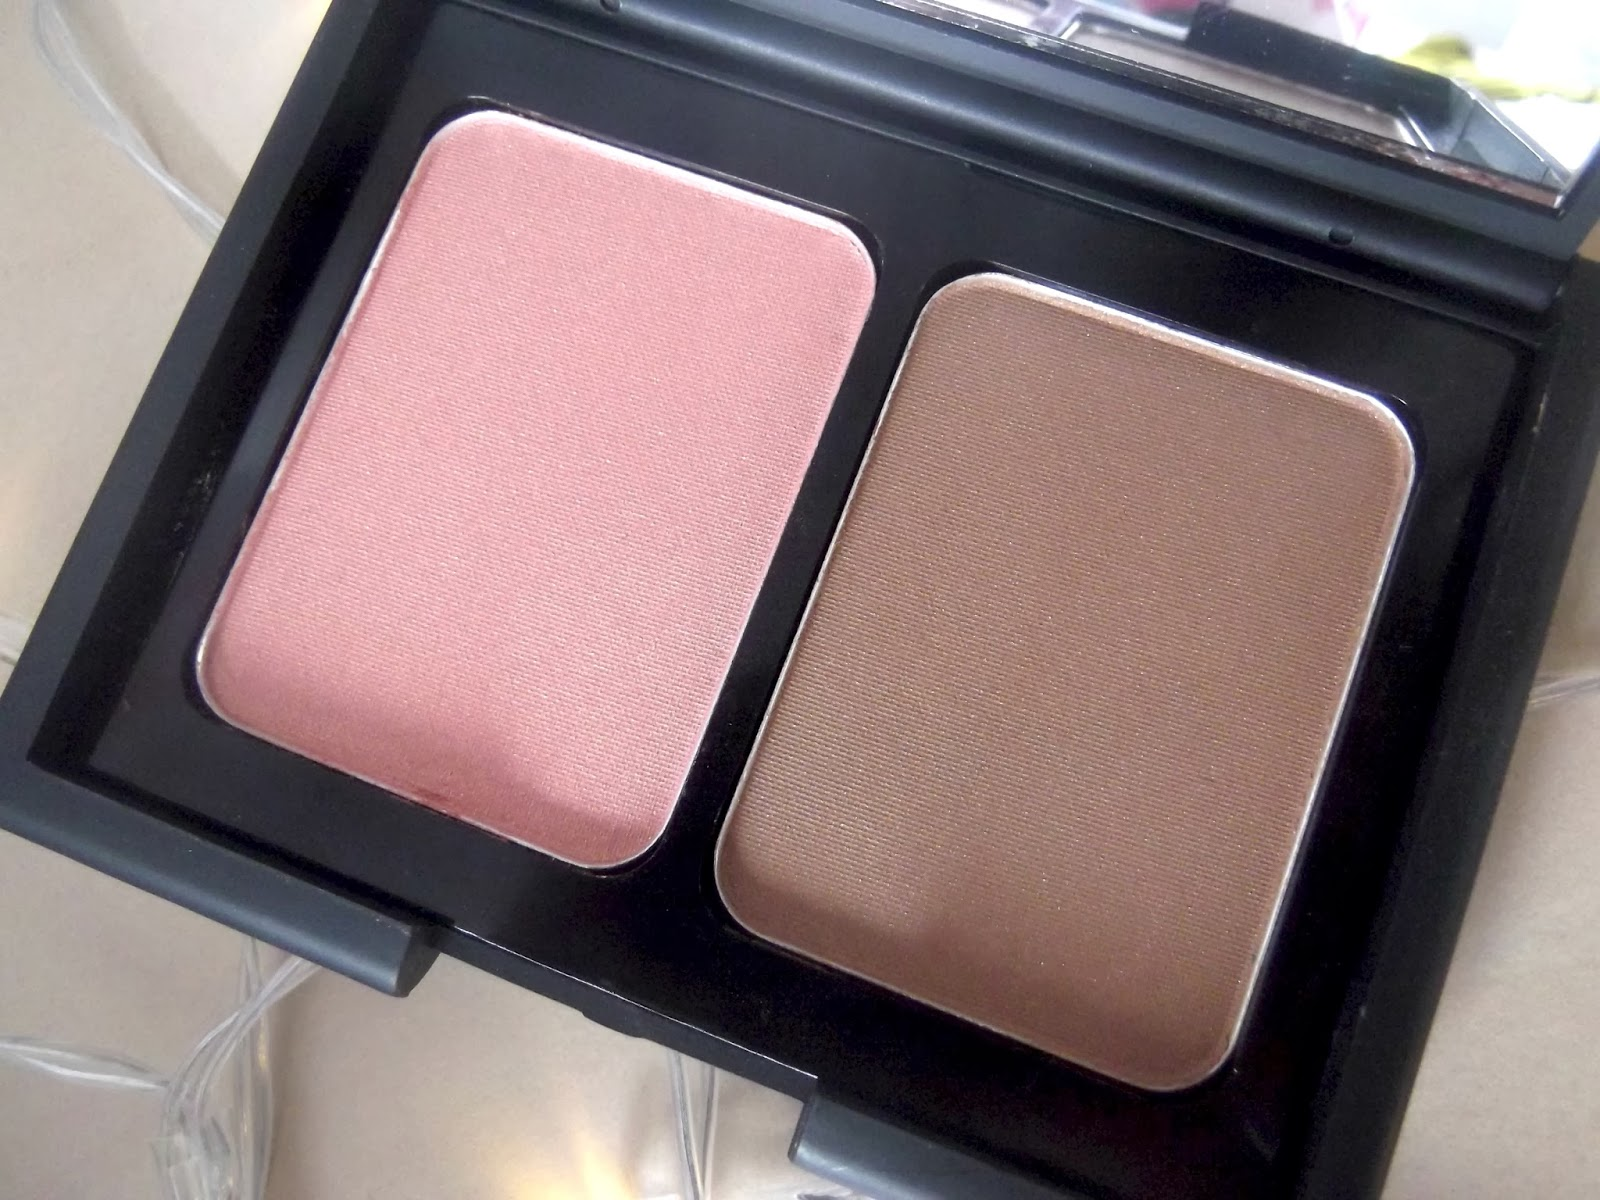 An Image Of E.L.F Contouring Blush & Bronzing Powder in St Lucia